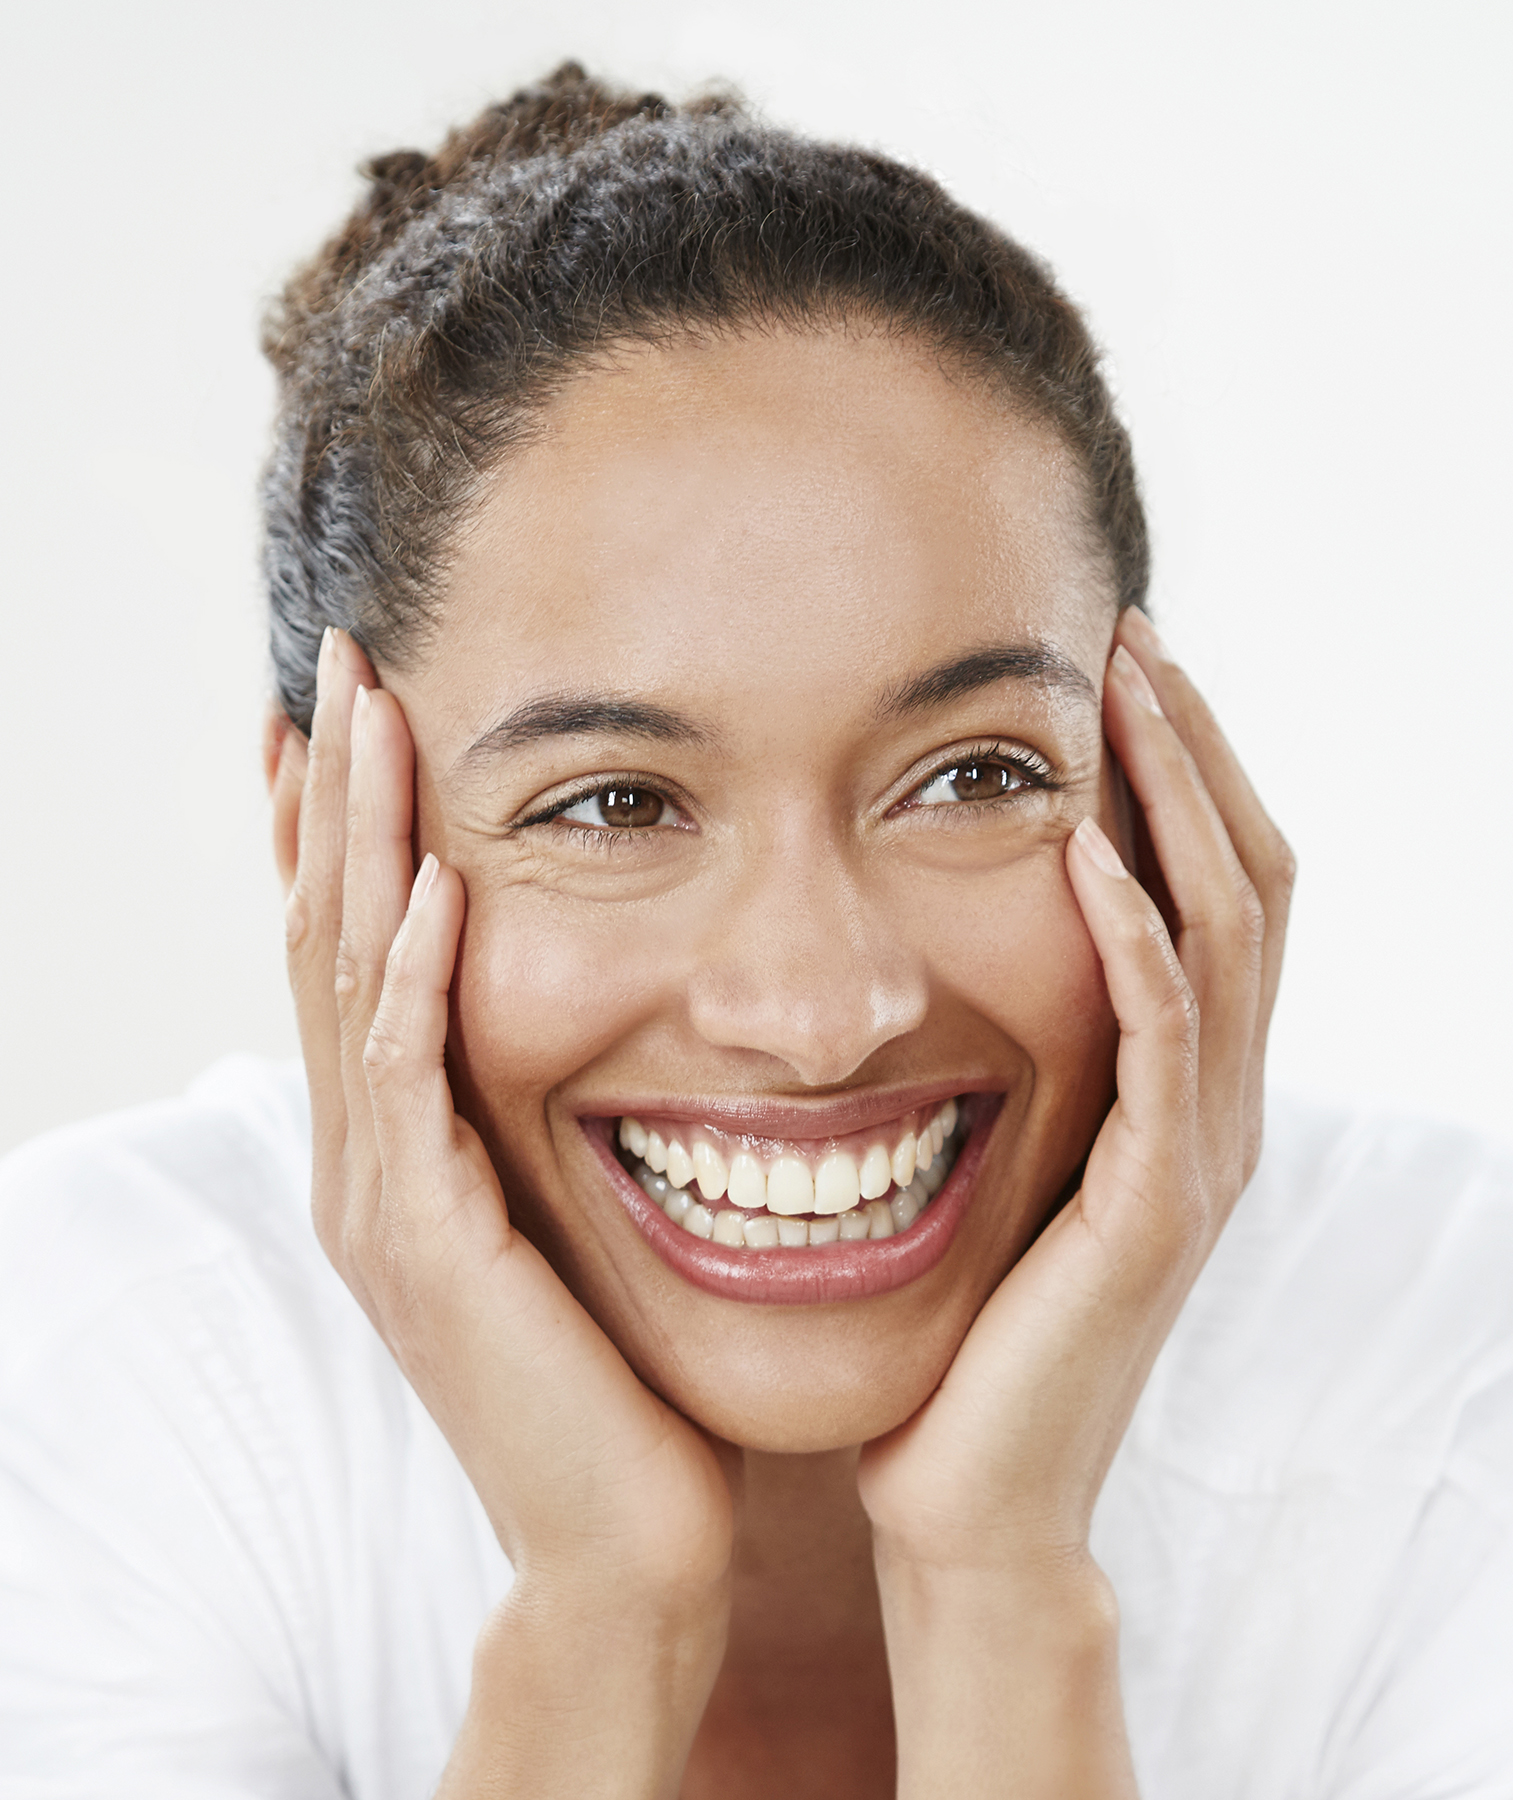 Model with hair pulled back, smiling and holding face in hands